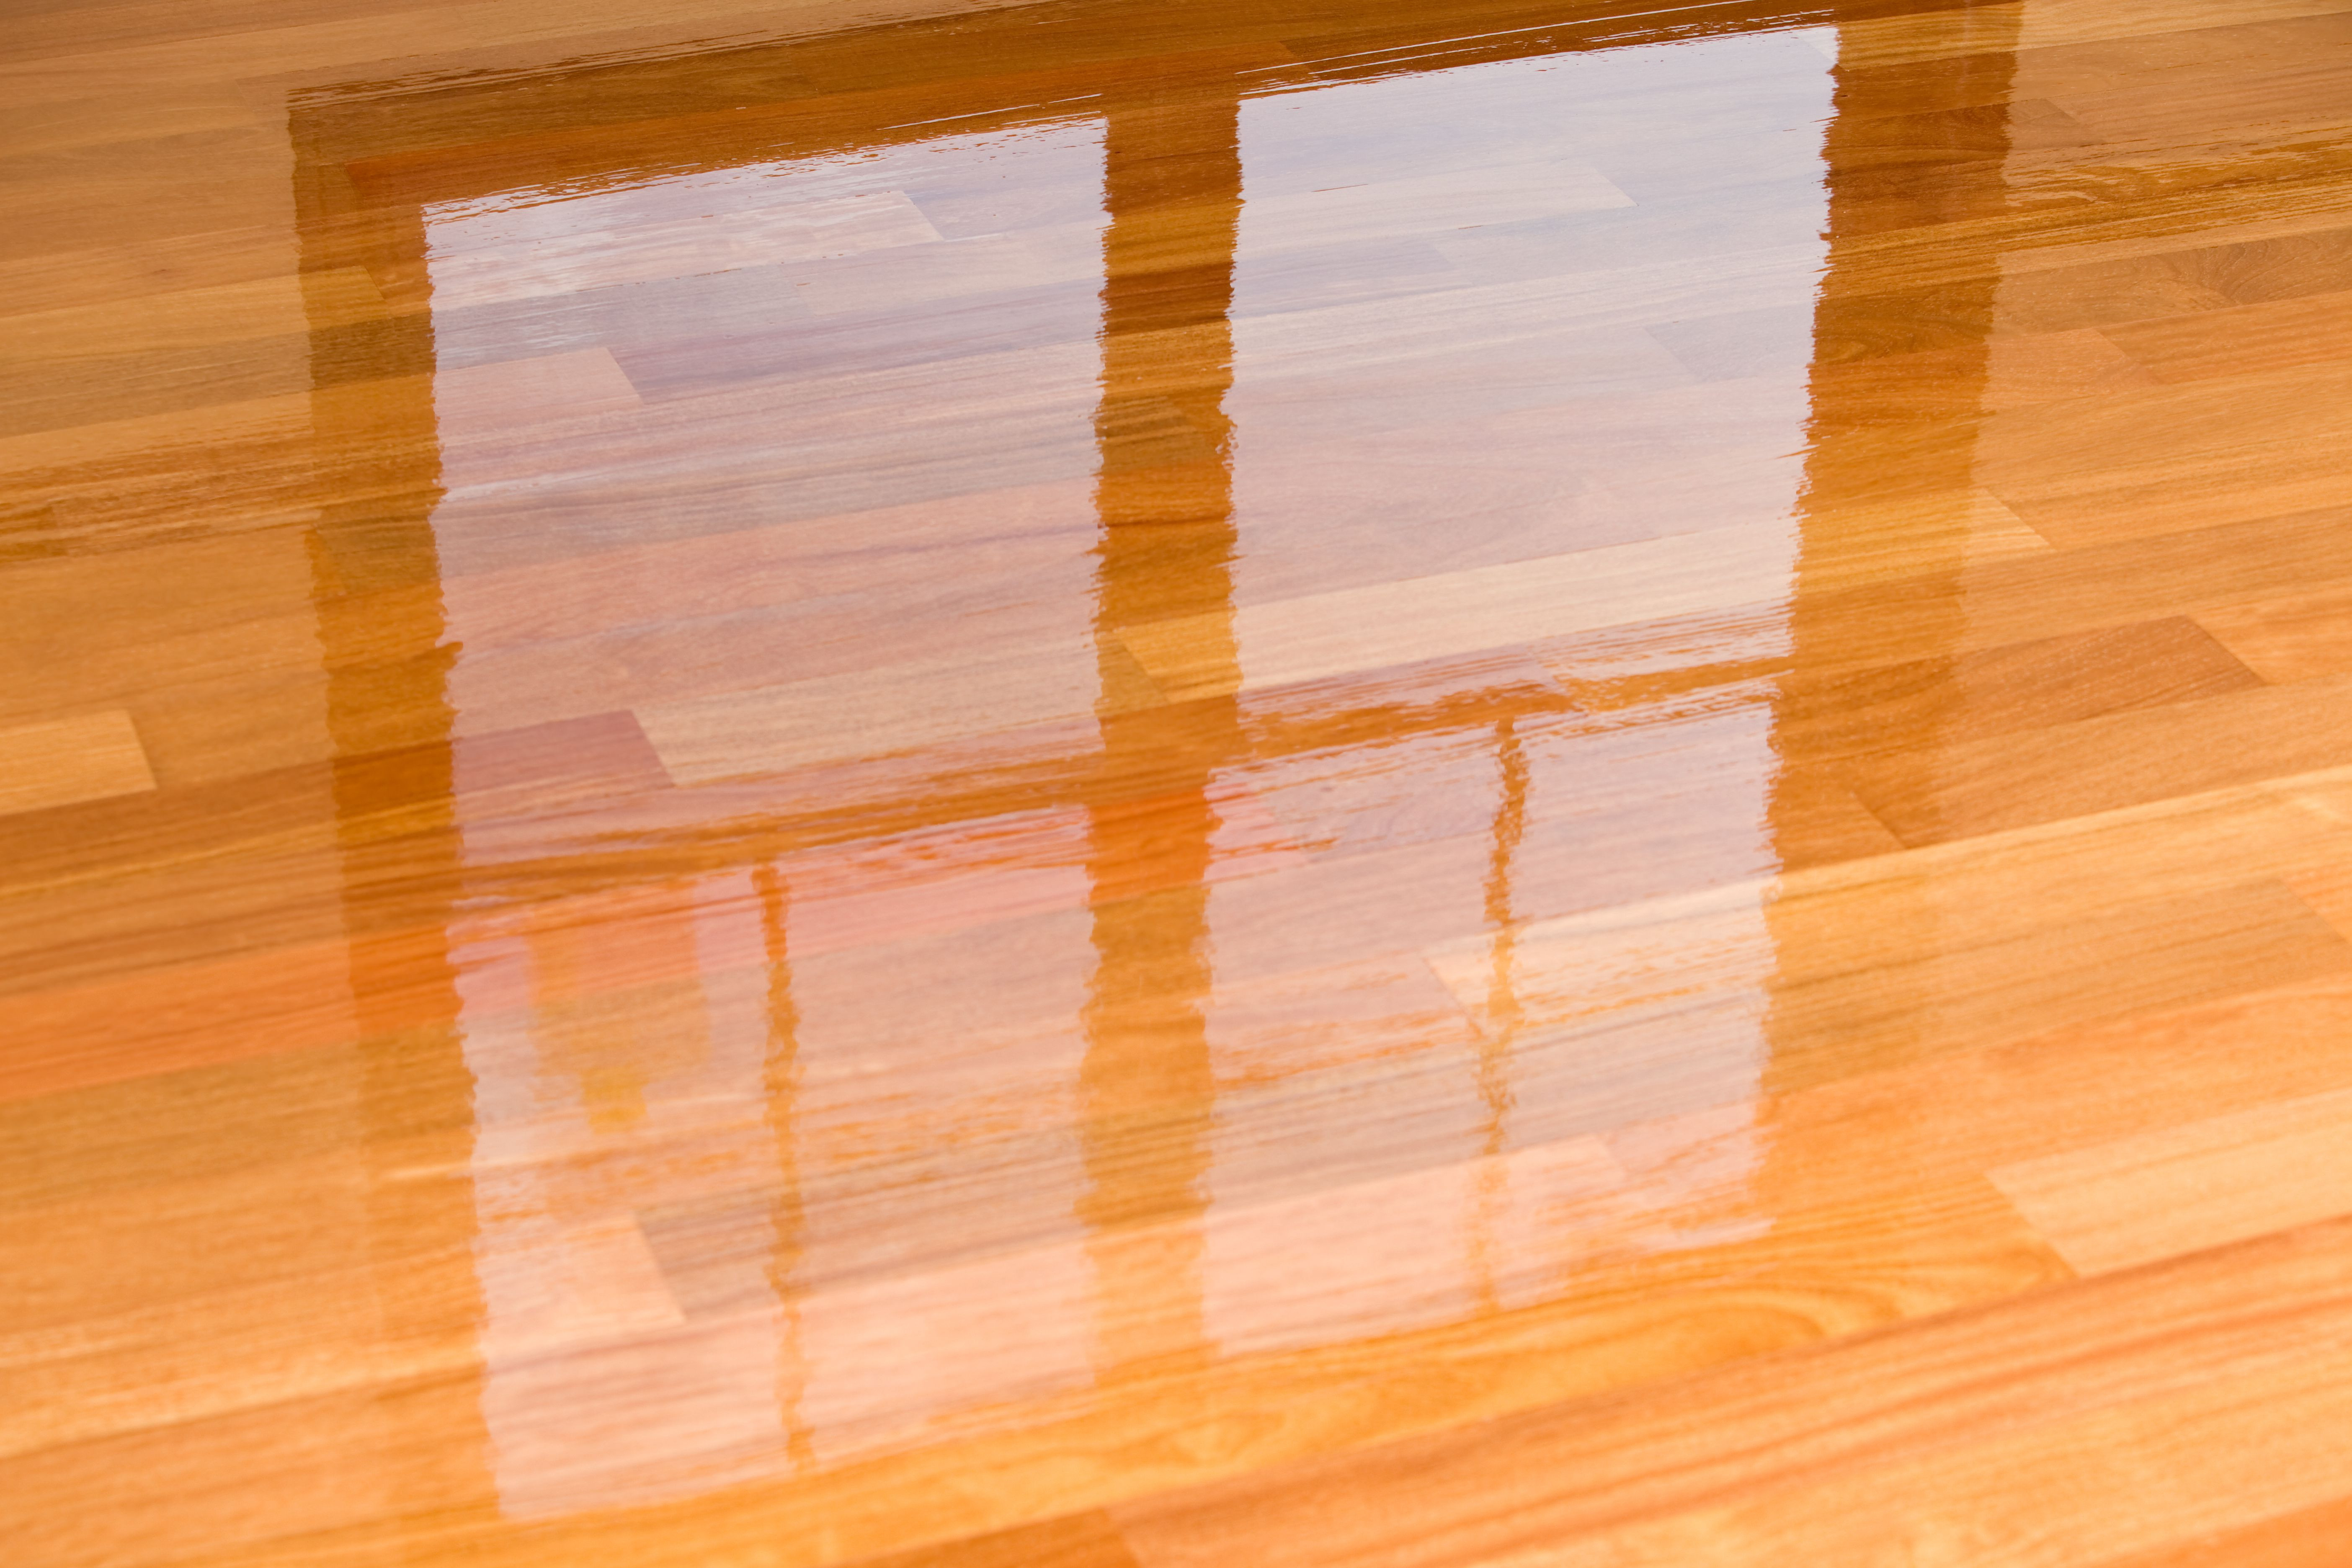 Cost to Finish Hardwood Floors Of Guide to Laminate Flooring Water and Damage Repair Inside Wet Polyurethane On New Hardwood Floor with Window Reflection 183846705 582e34da3df78c6f6a403968